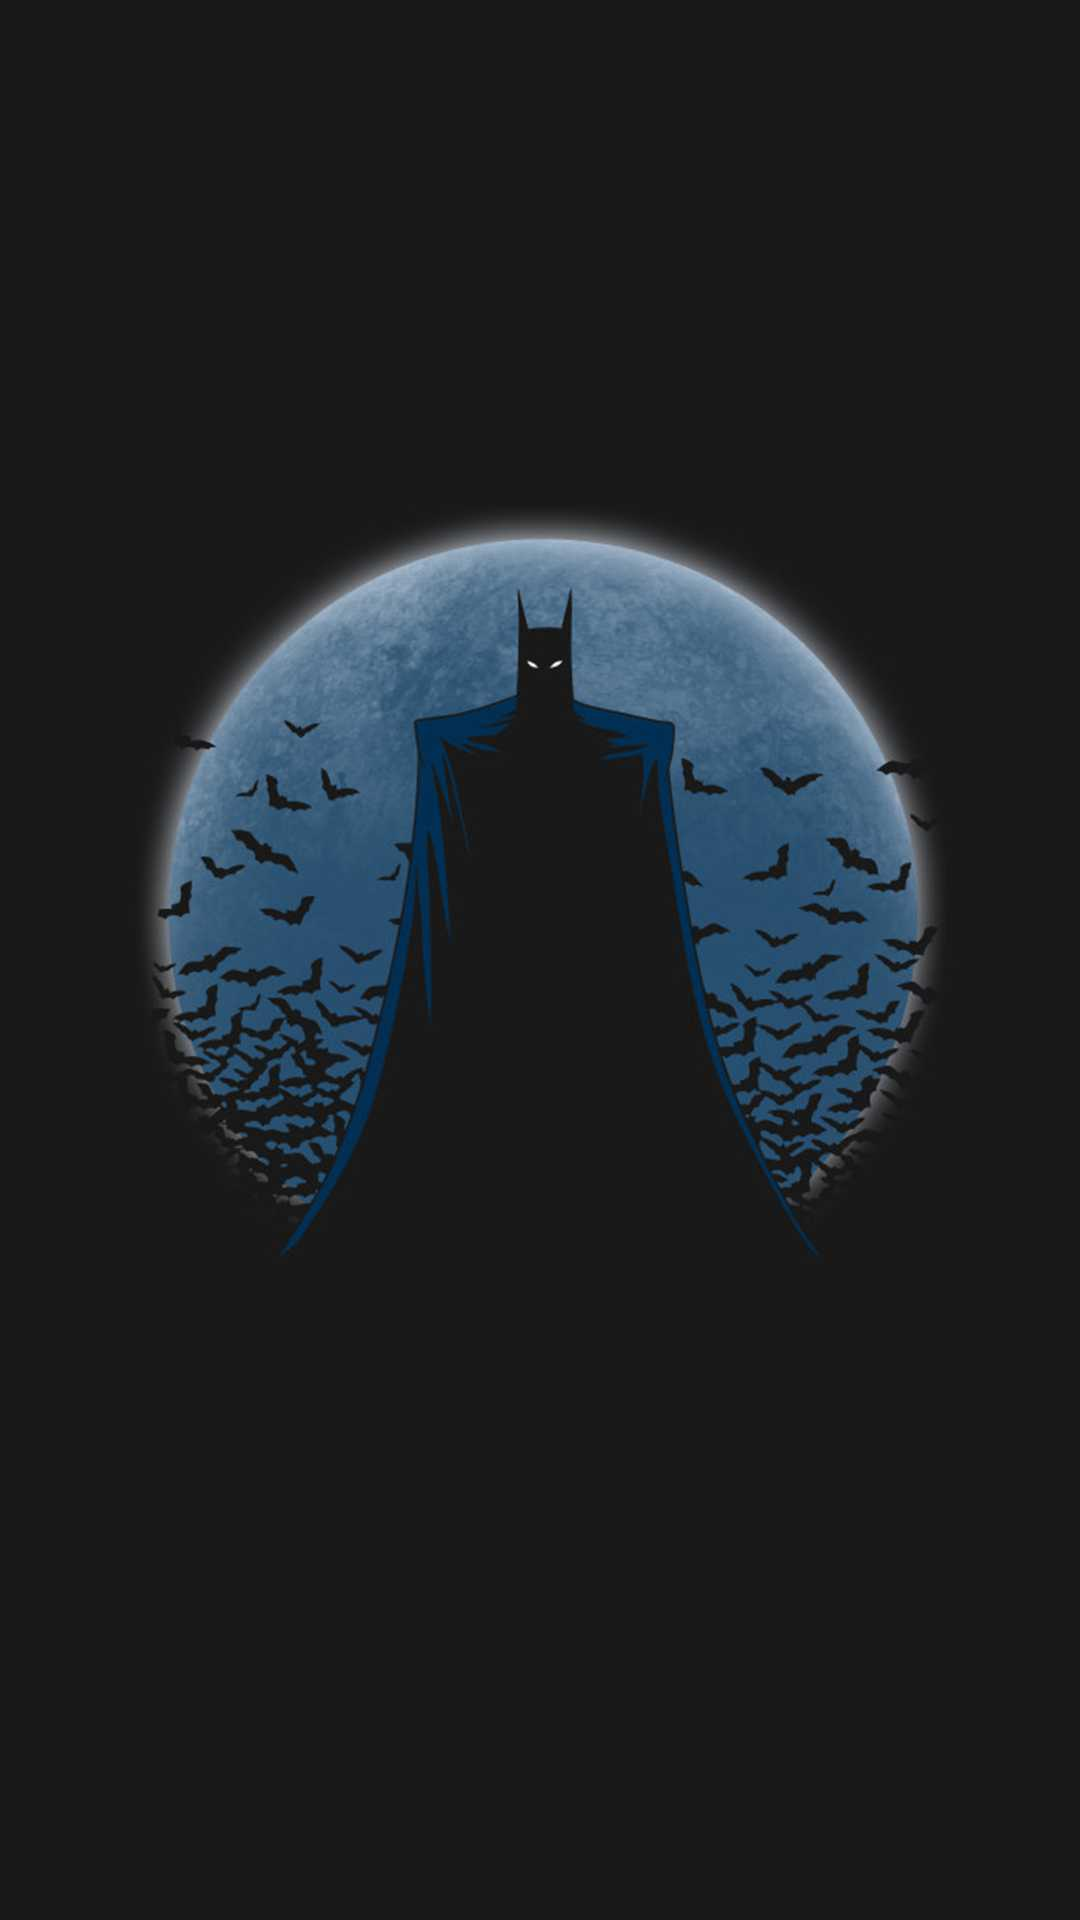 The Batman Minimal Dark iPhone Wallpaper